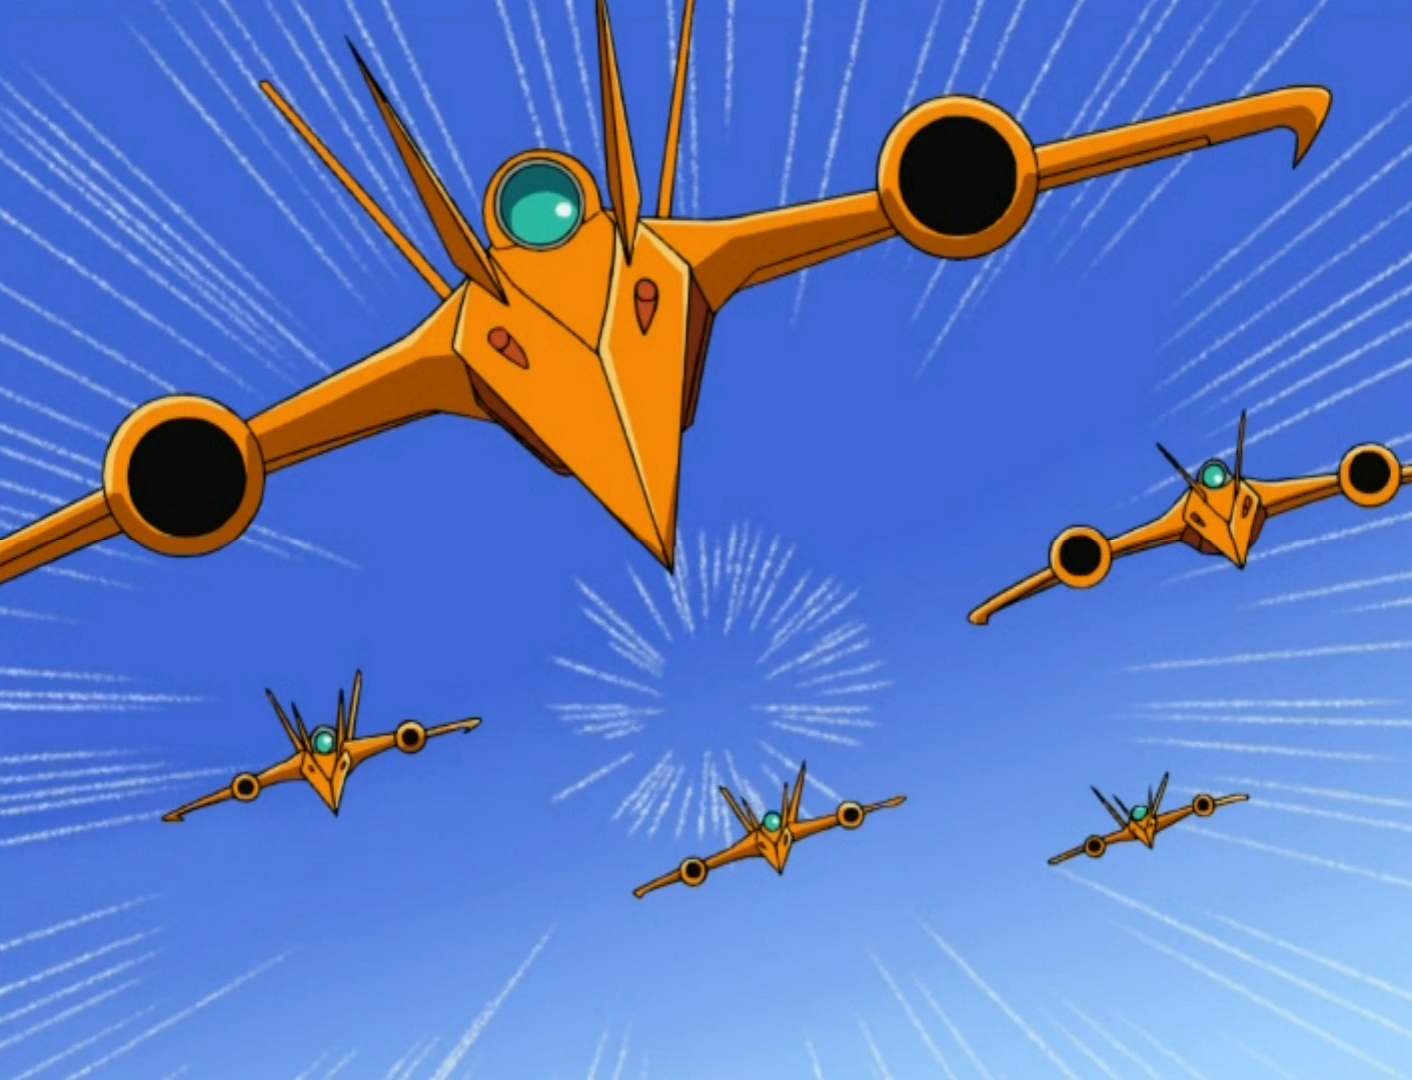 File:E43Falcon.png